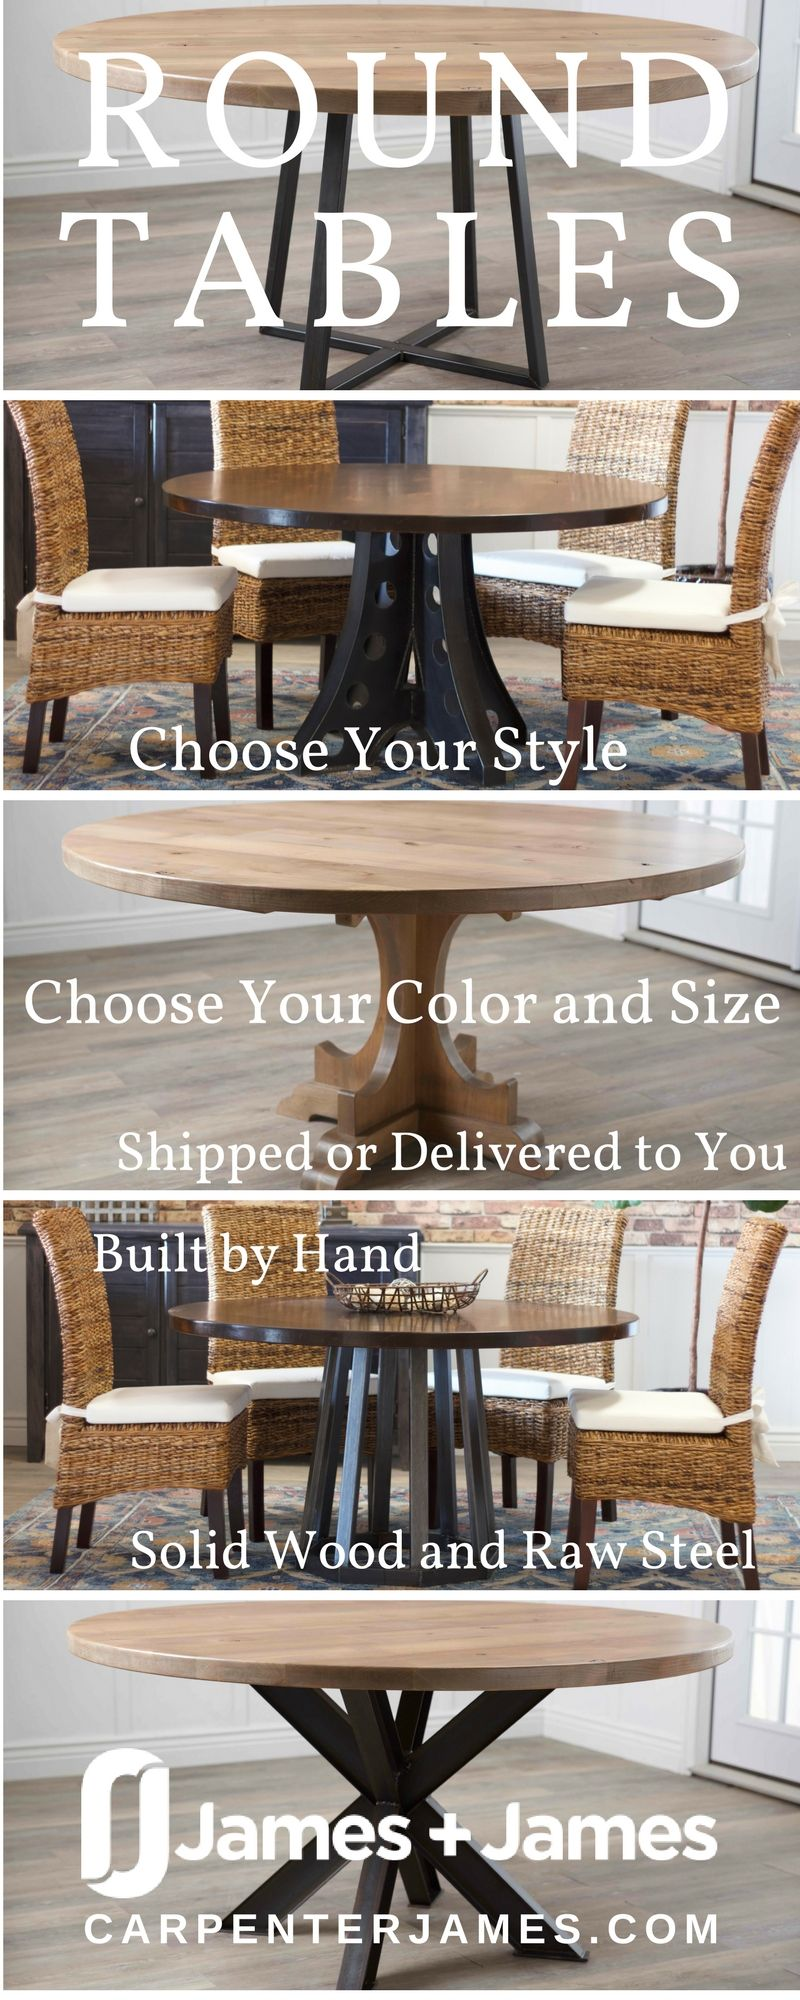 Woods Complete your space with a round